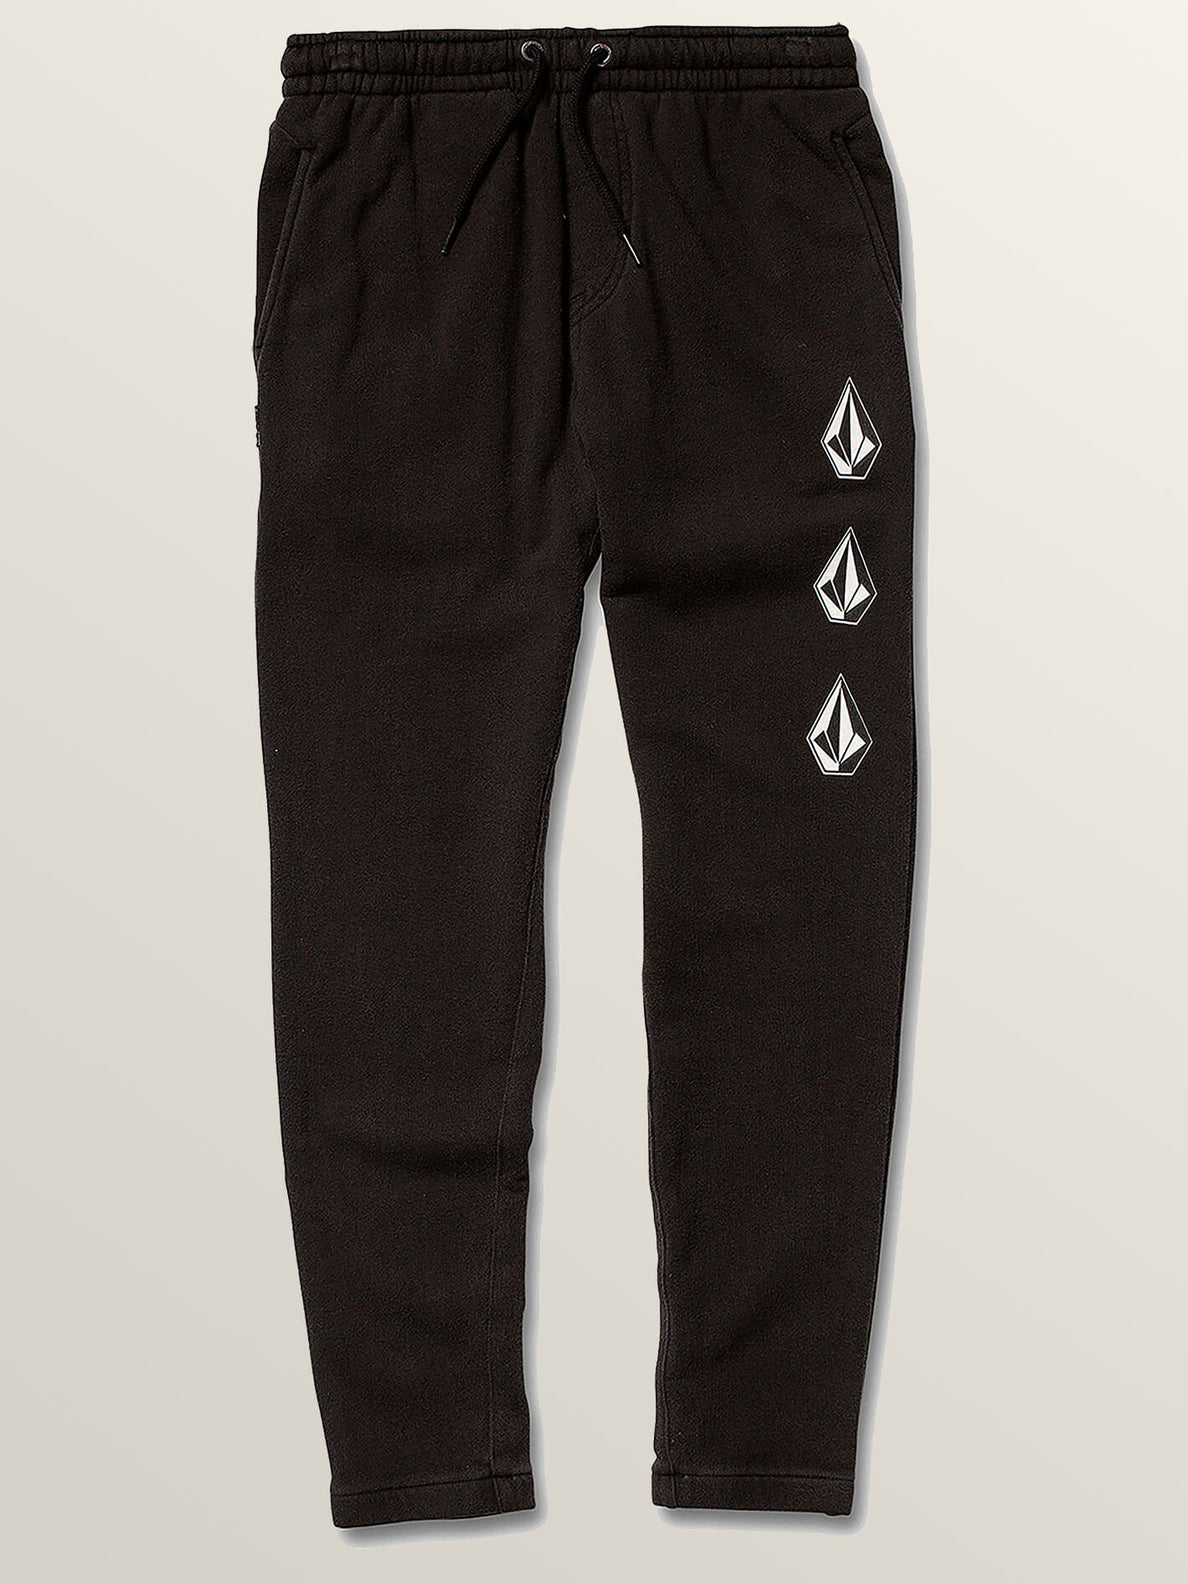 Big Boys Deadly Stones Pants In Black, Front View